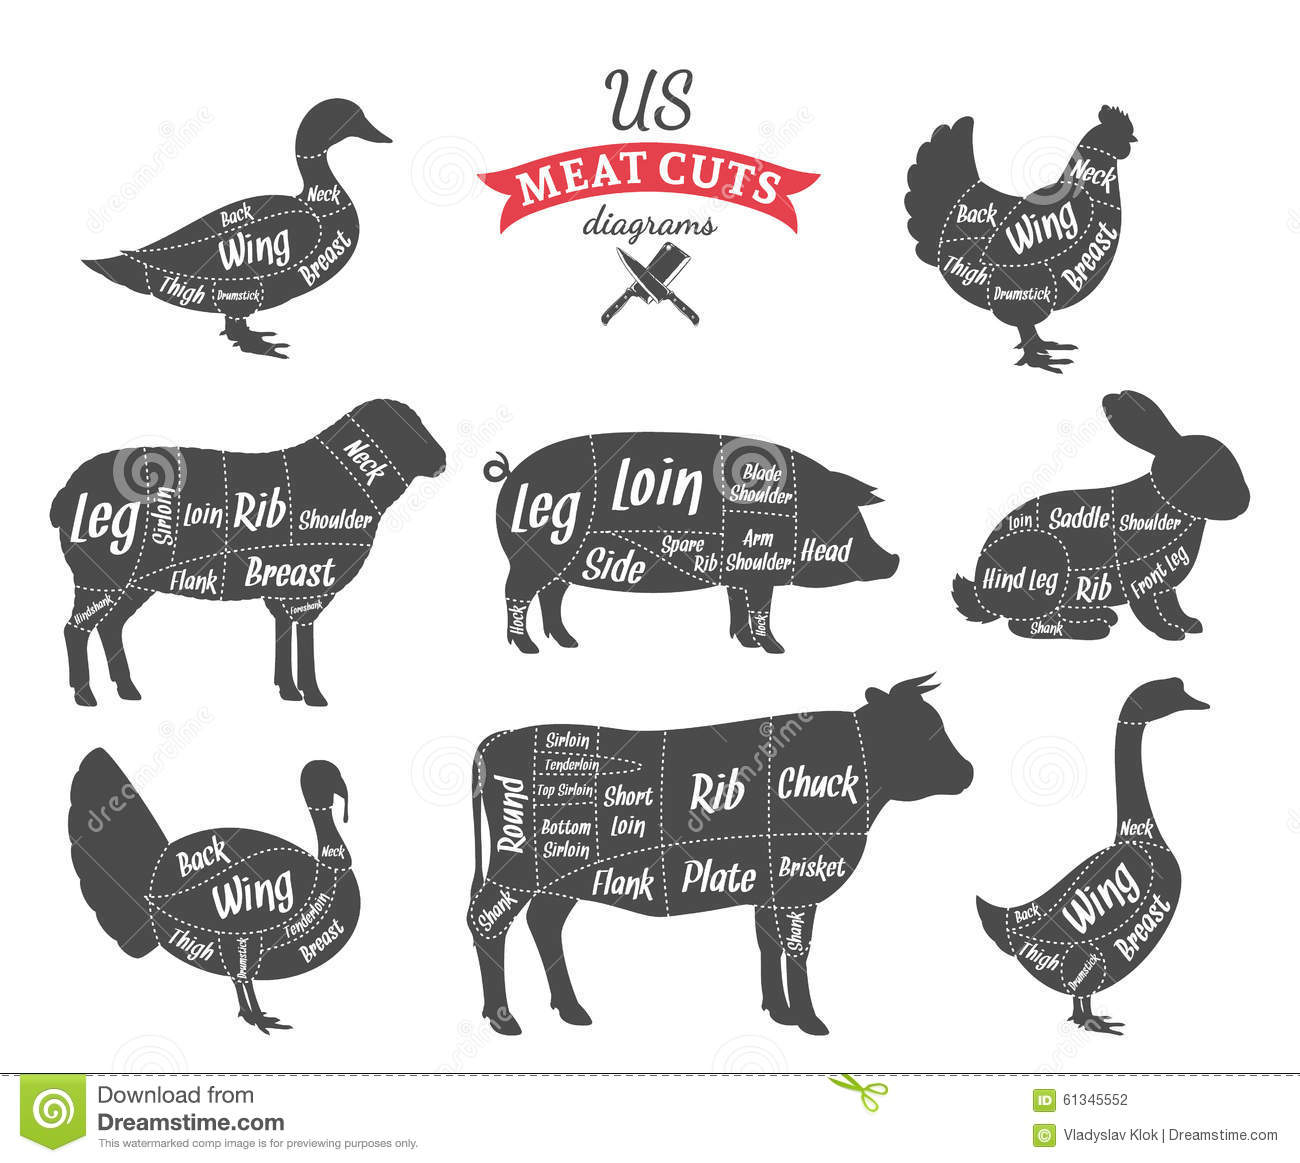 American Us Meat Cuts Diagrams Stock Vector